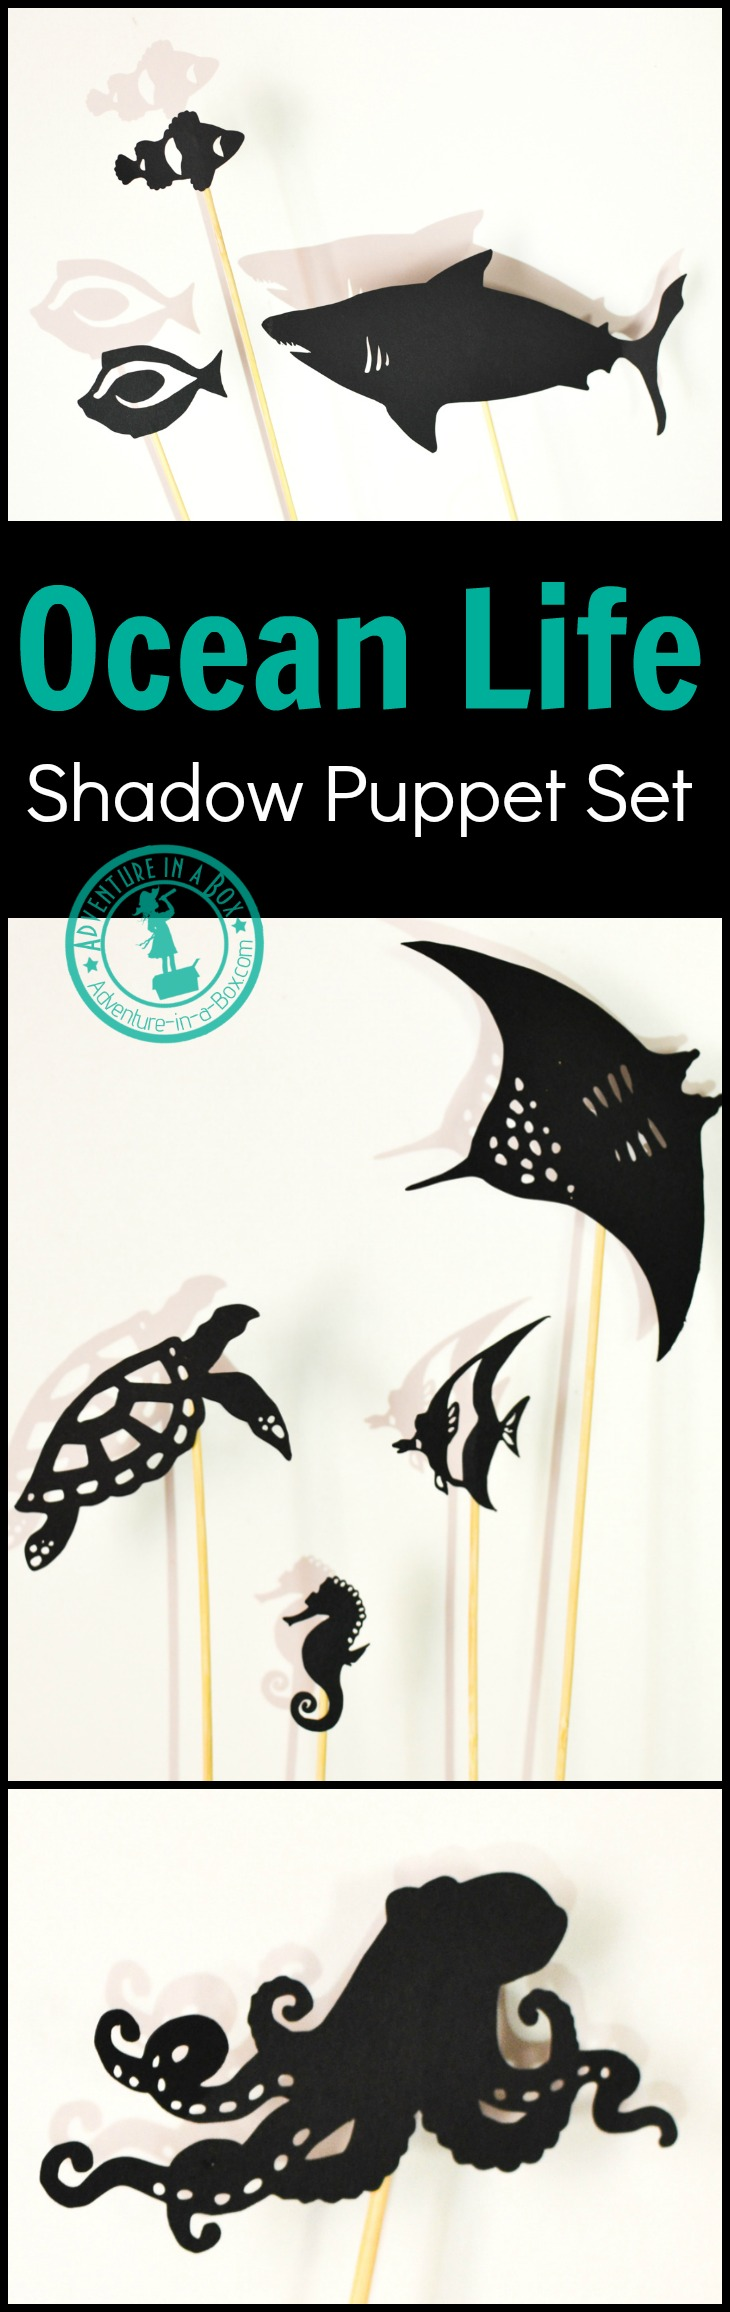 Print and cut your own set of ocean life shadow puppets! Great for studying coral reefs with kids, as well as Finding Nemo or Finding Dory party ideas. #homeschool #preschool #kidscrafts